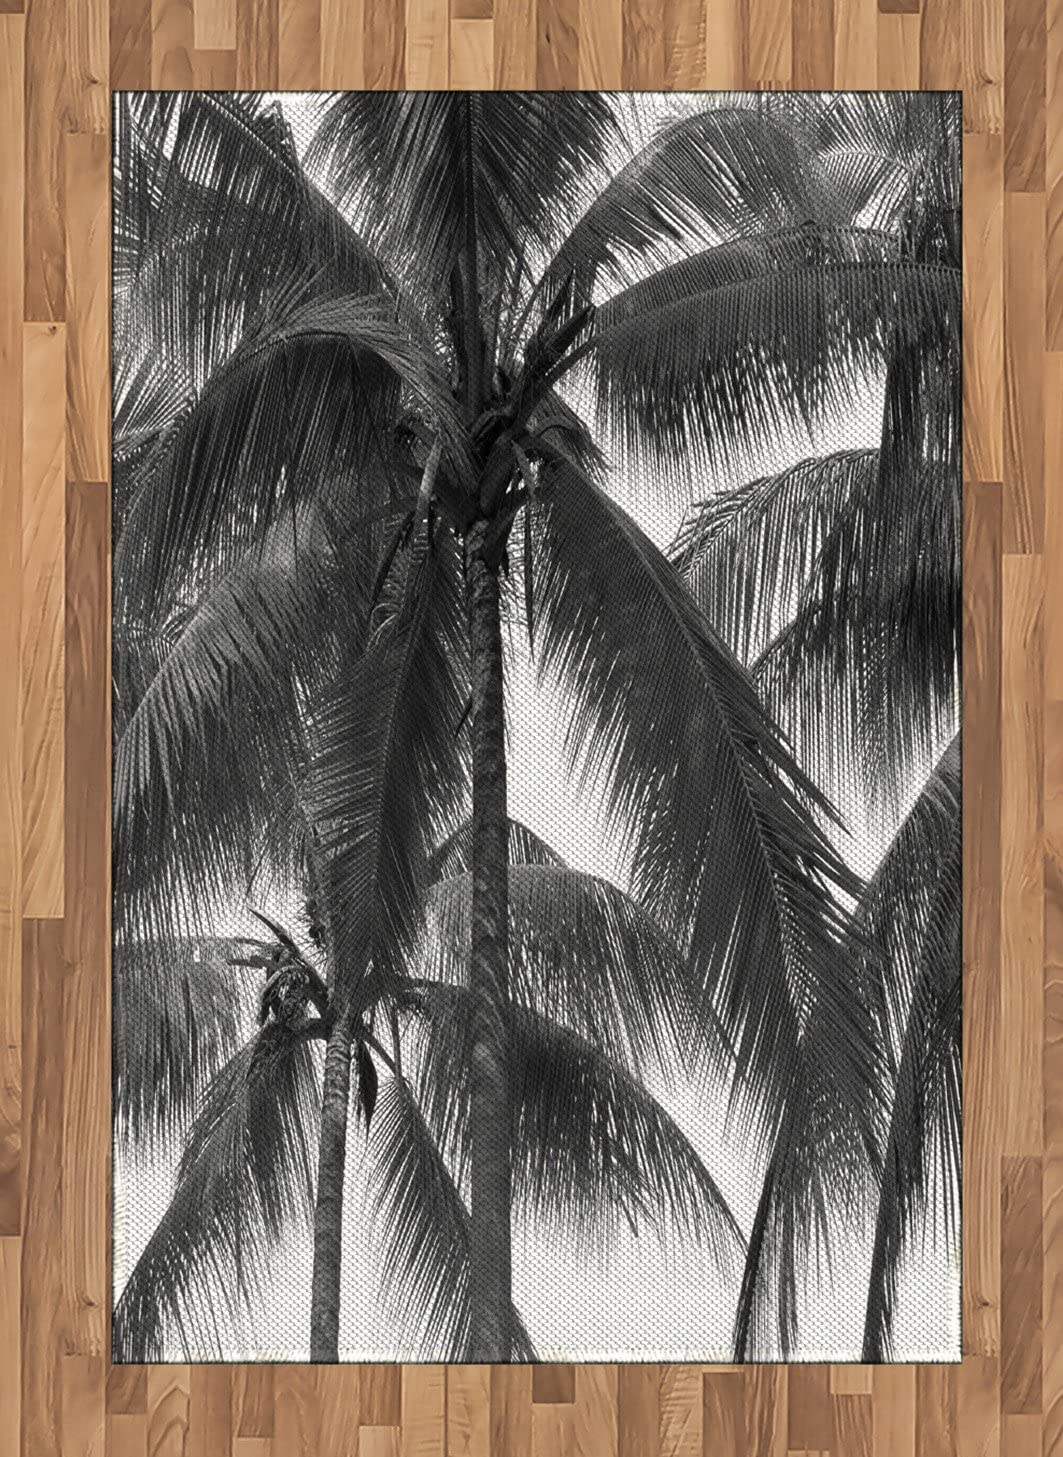 Ambesonne Palm Tree Area Rug, Palm Tree Silhouette Exotic Plant on Dark Theme Foliages Relaxing in Nature Image, Flat Woven Accent Rug for Living Room Bedroom Dining Room, 4' X 5.7', Black